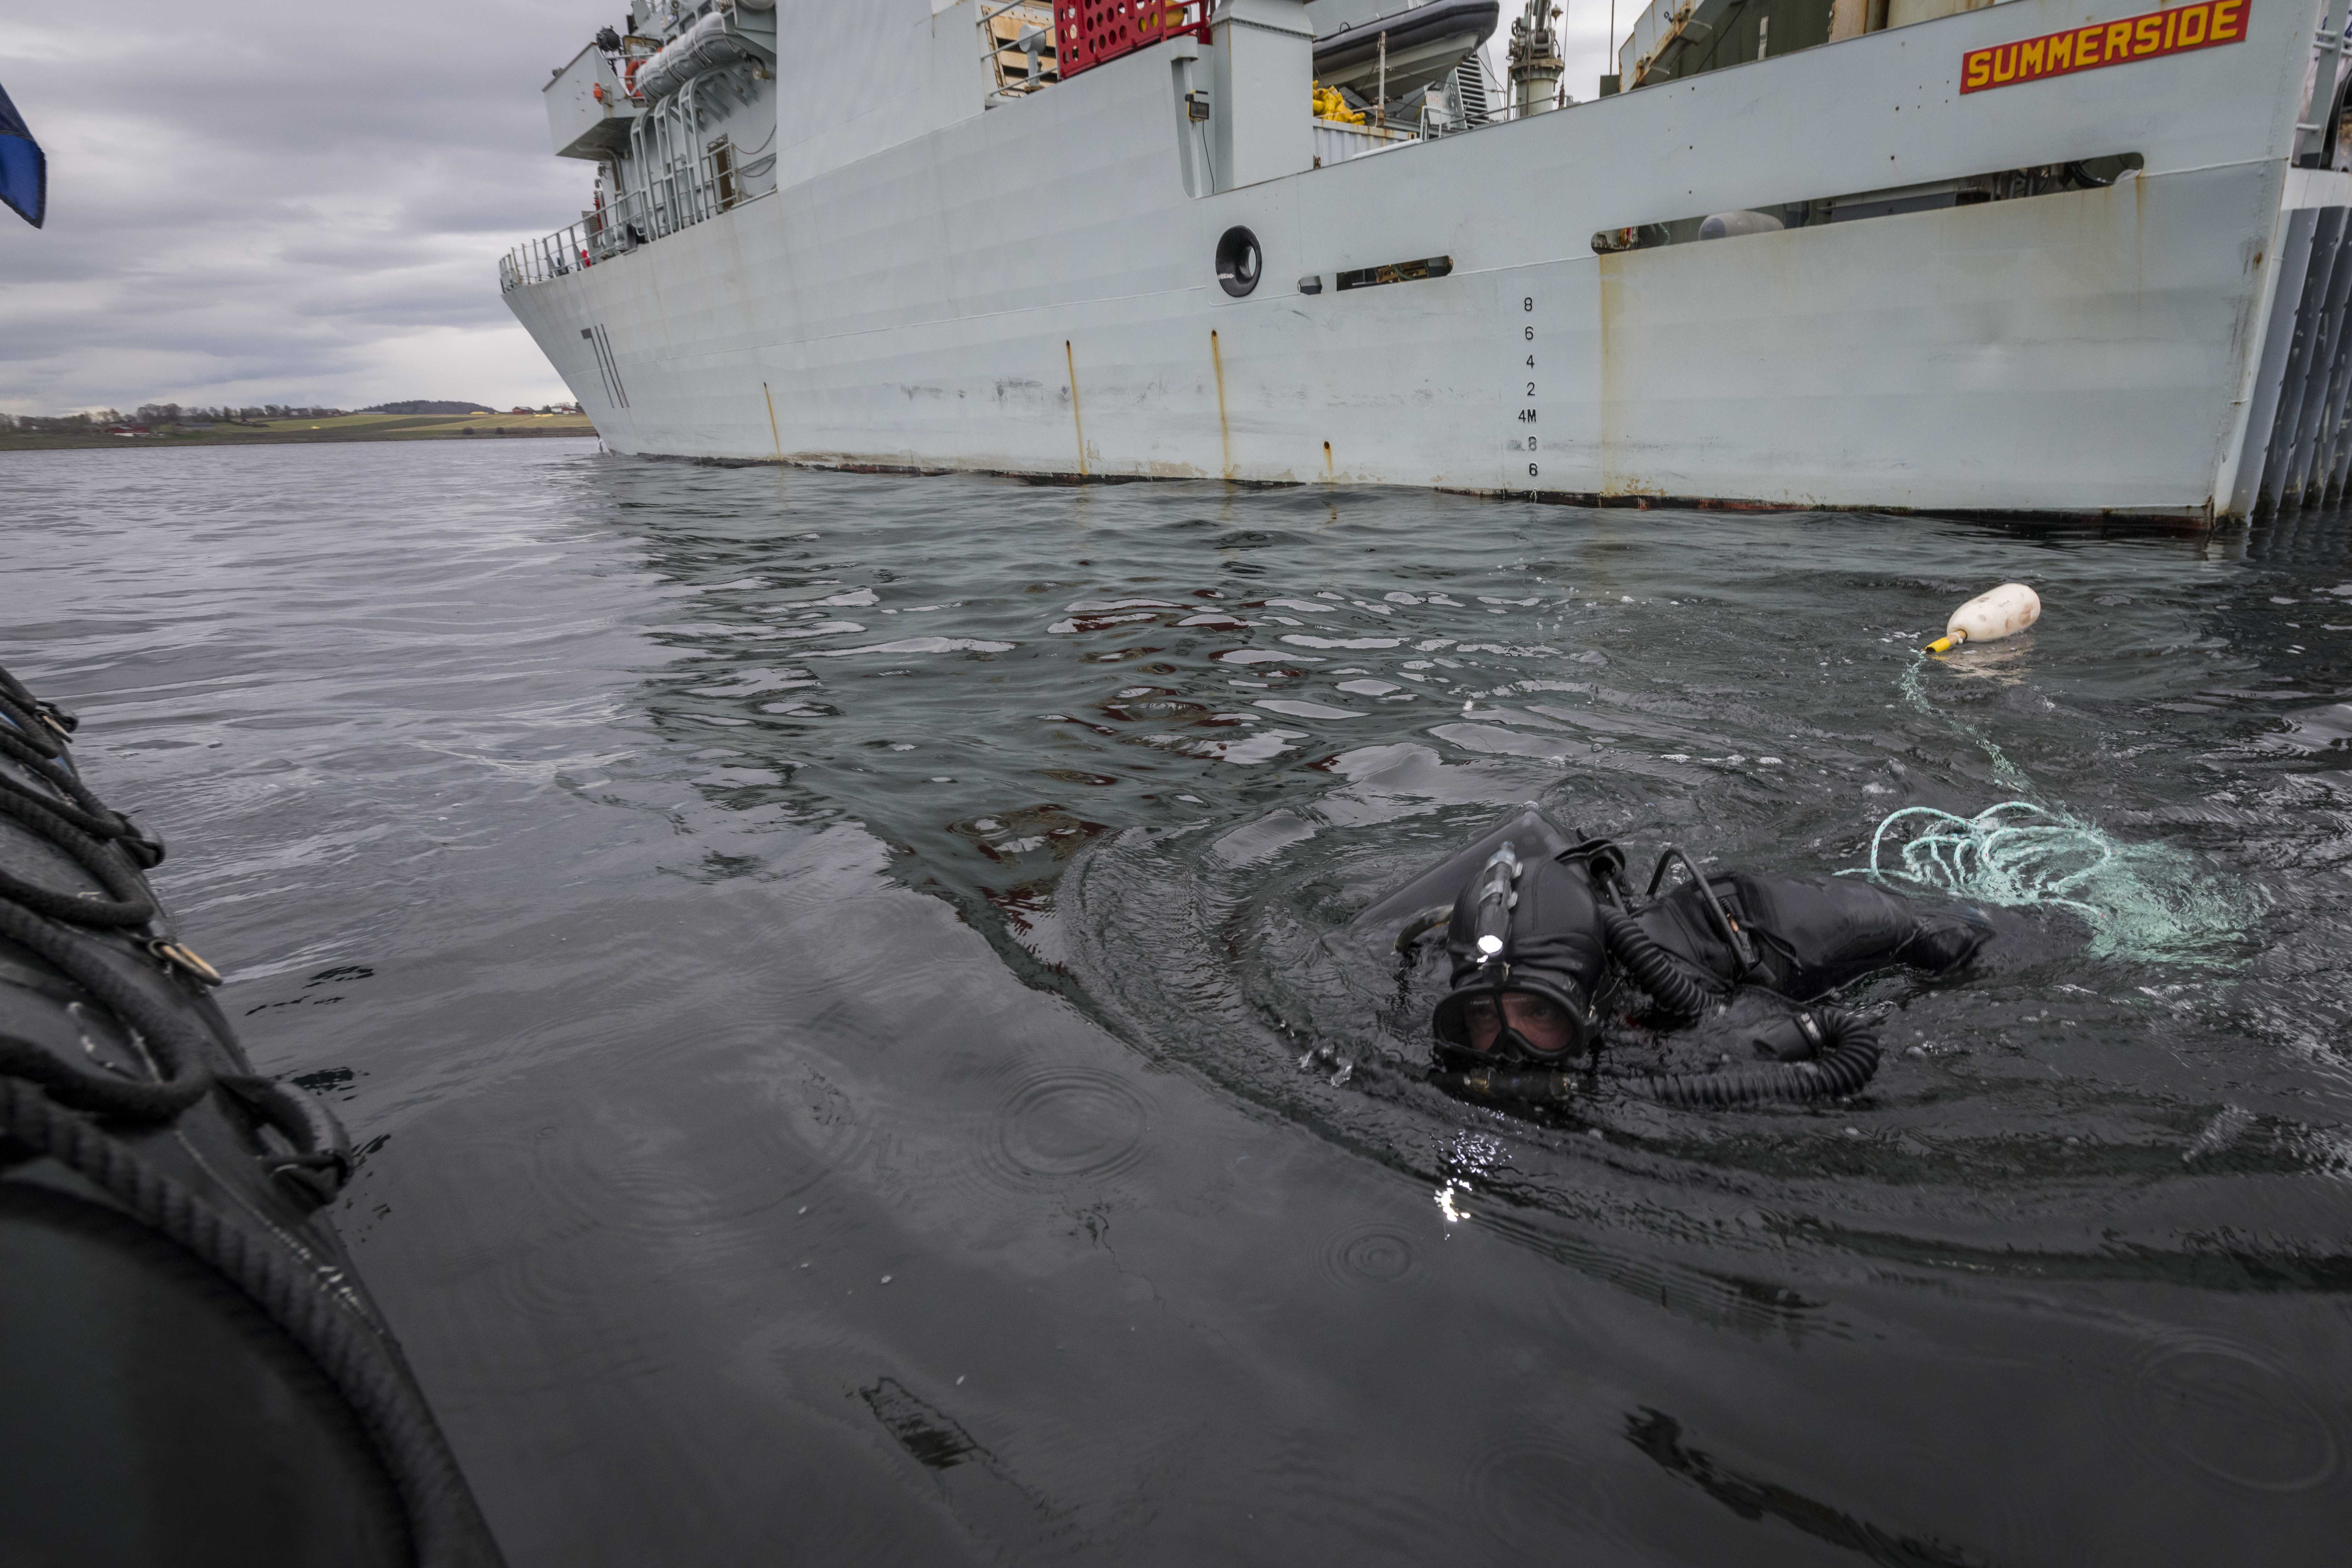 A Royal Canadian Navy clearance diver inspects under Her Majesty's Canadian Ship (HMCS) Summerside during Exercise TRIDENT JUNCTURE, in the fjords of Norway, in 2018.